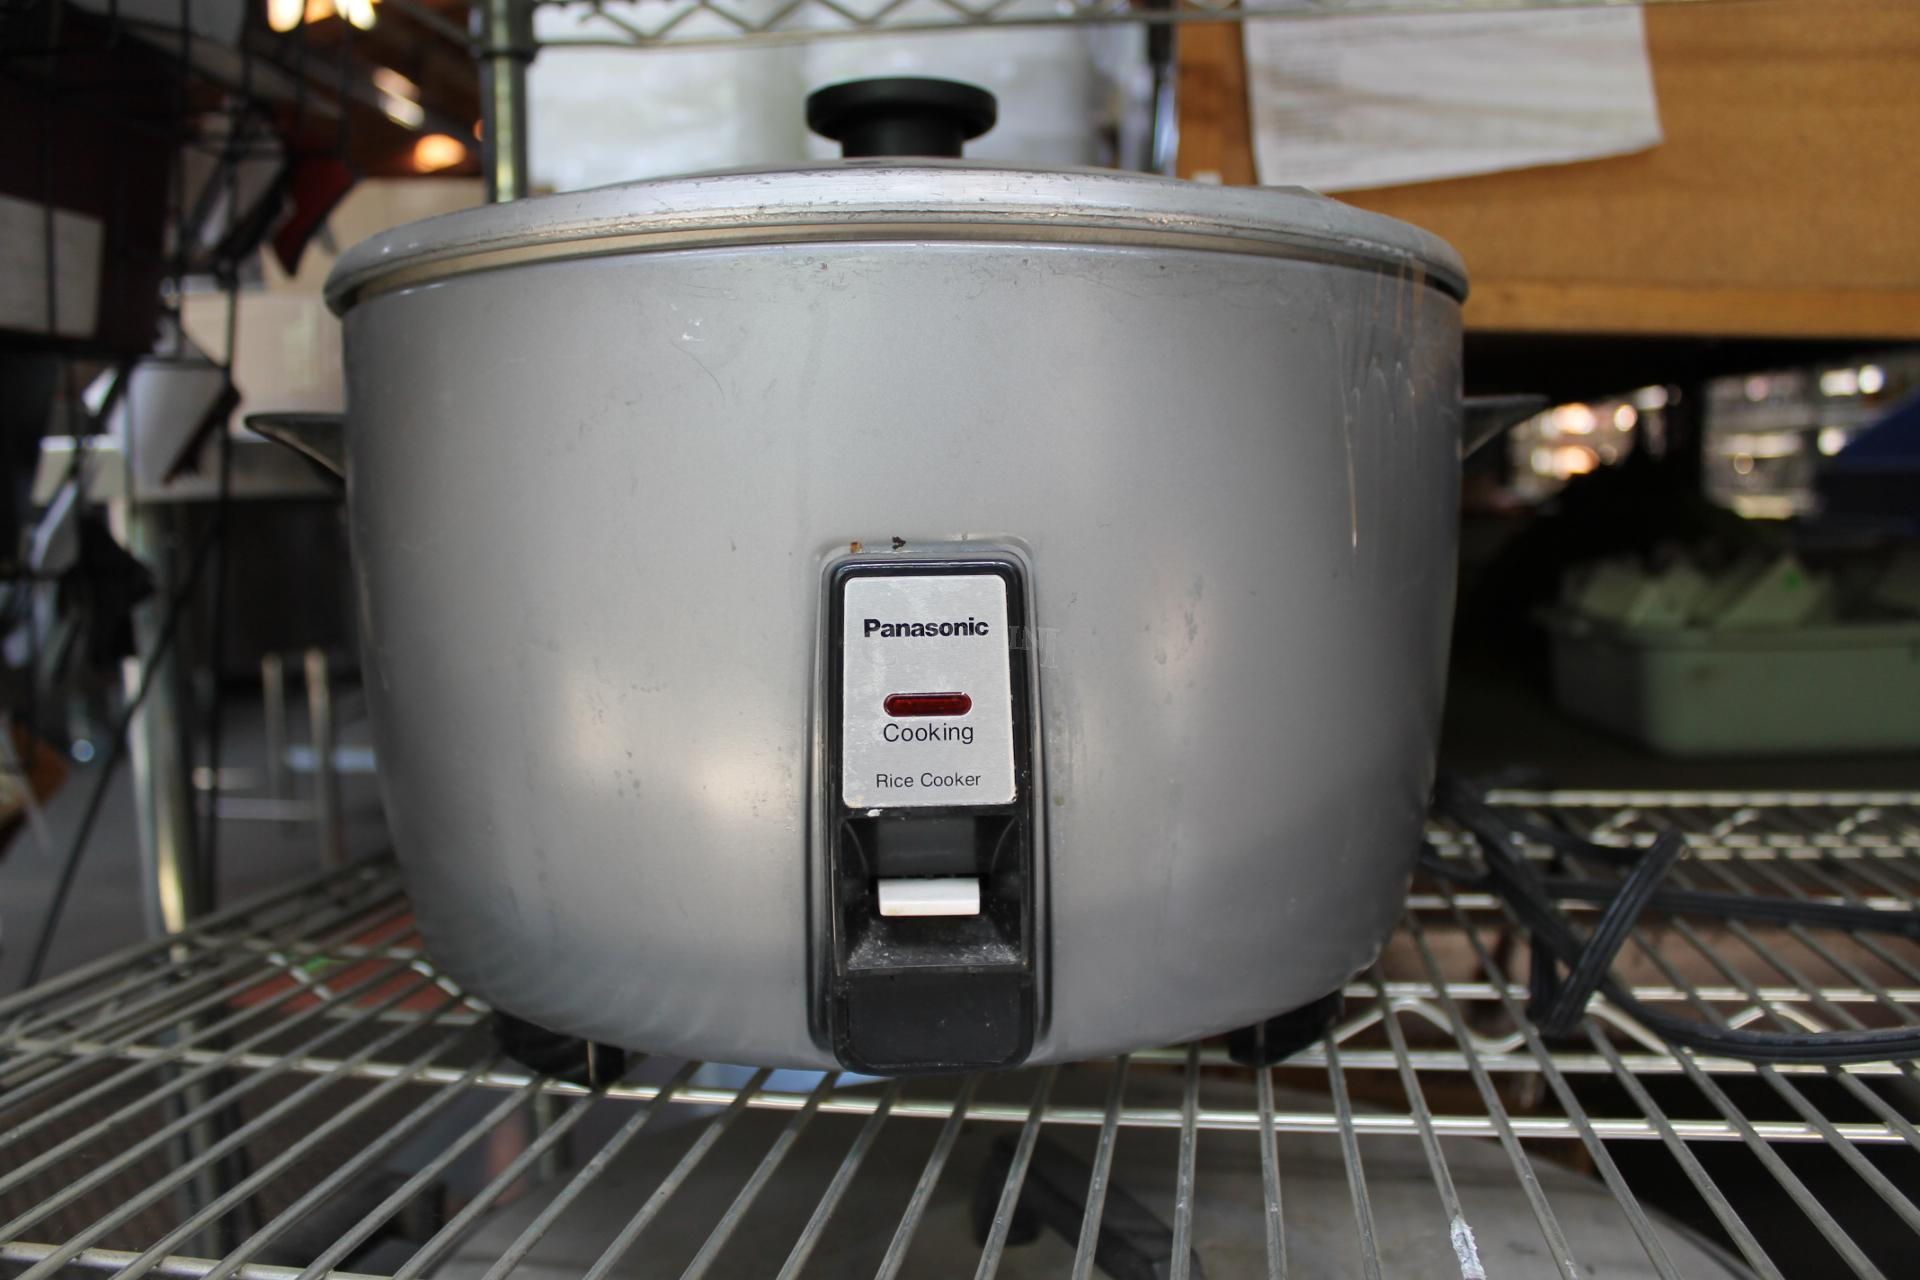 Used Rice Cookers